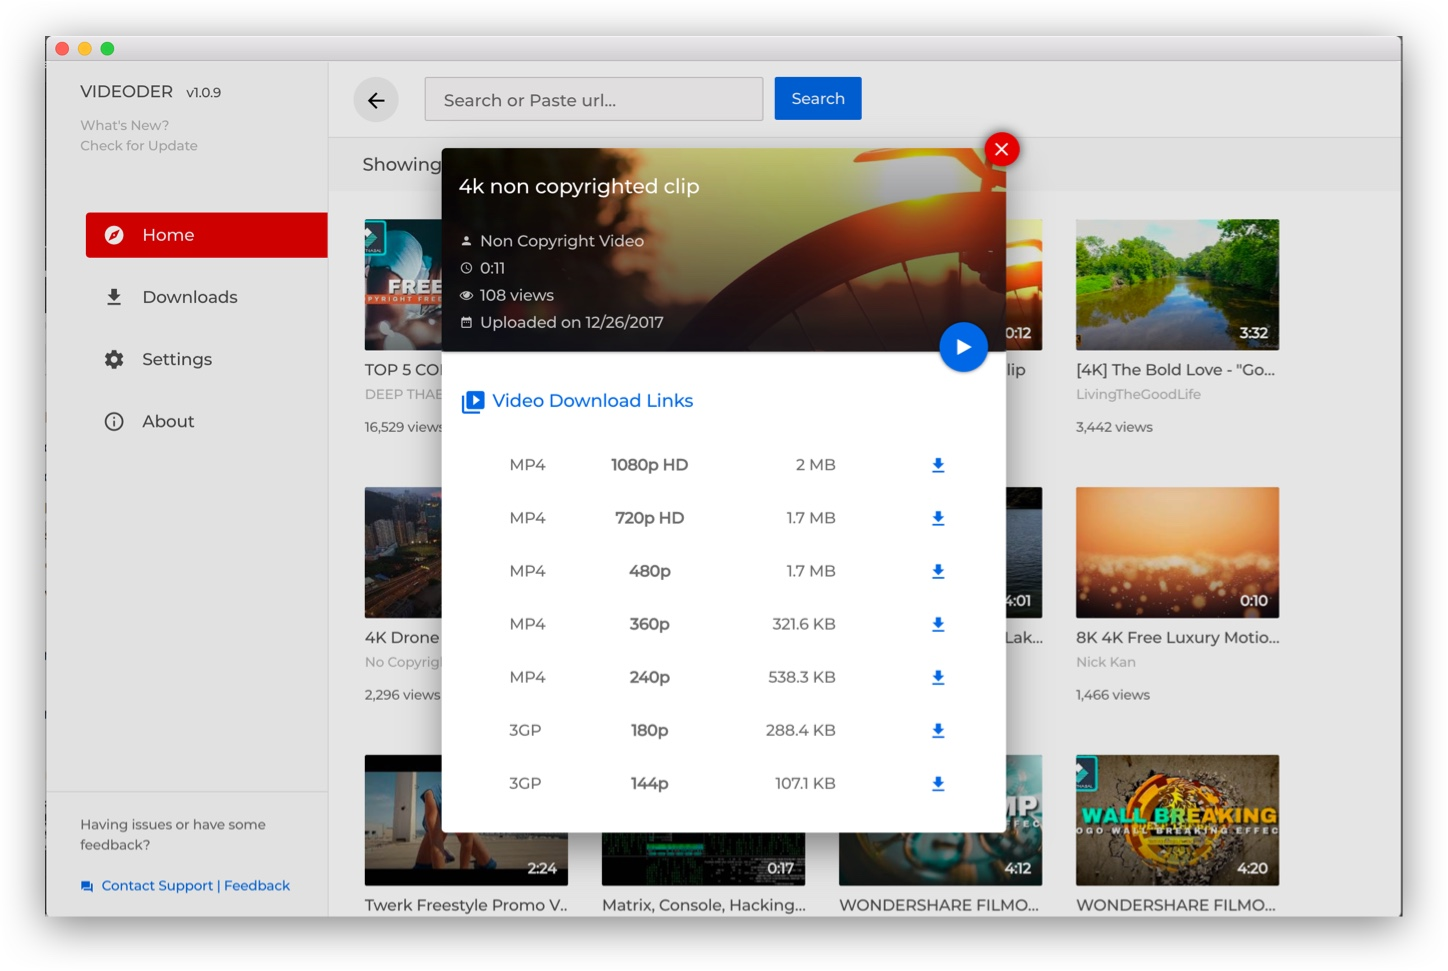 Youtube Video Downloader for PC - Videoder